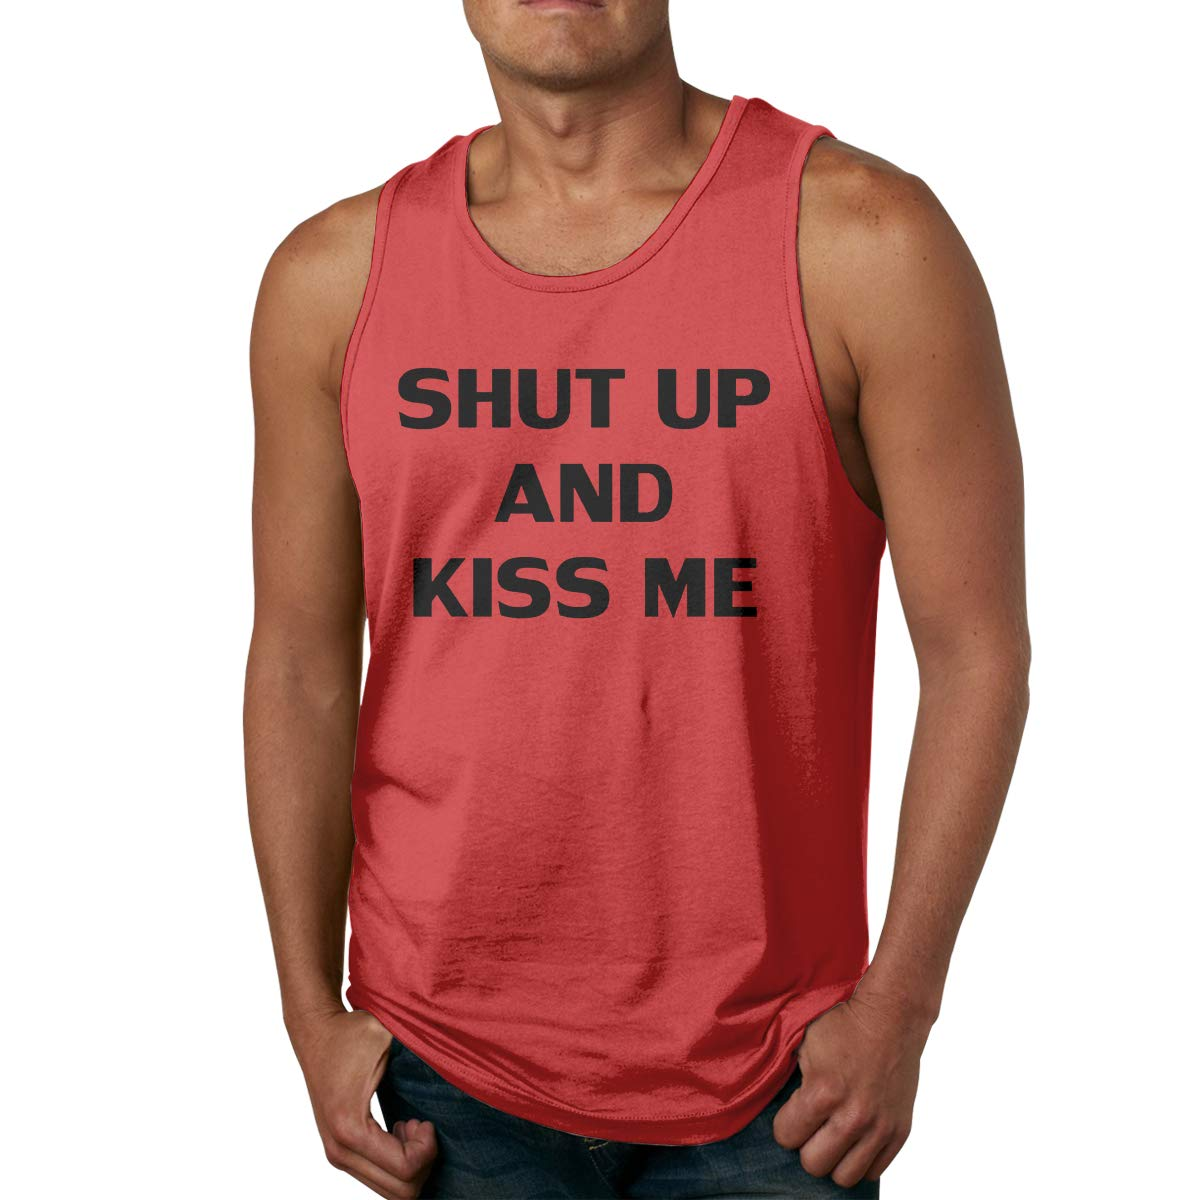 Mans Fashion Solid Color Round Neck Shut UP and KISS ME Gym Tank Undershirts